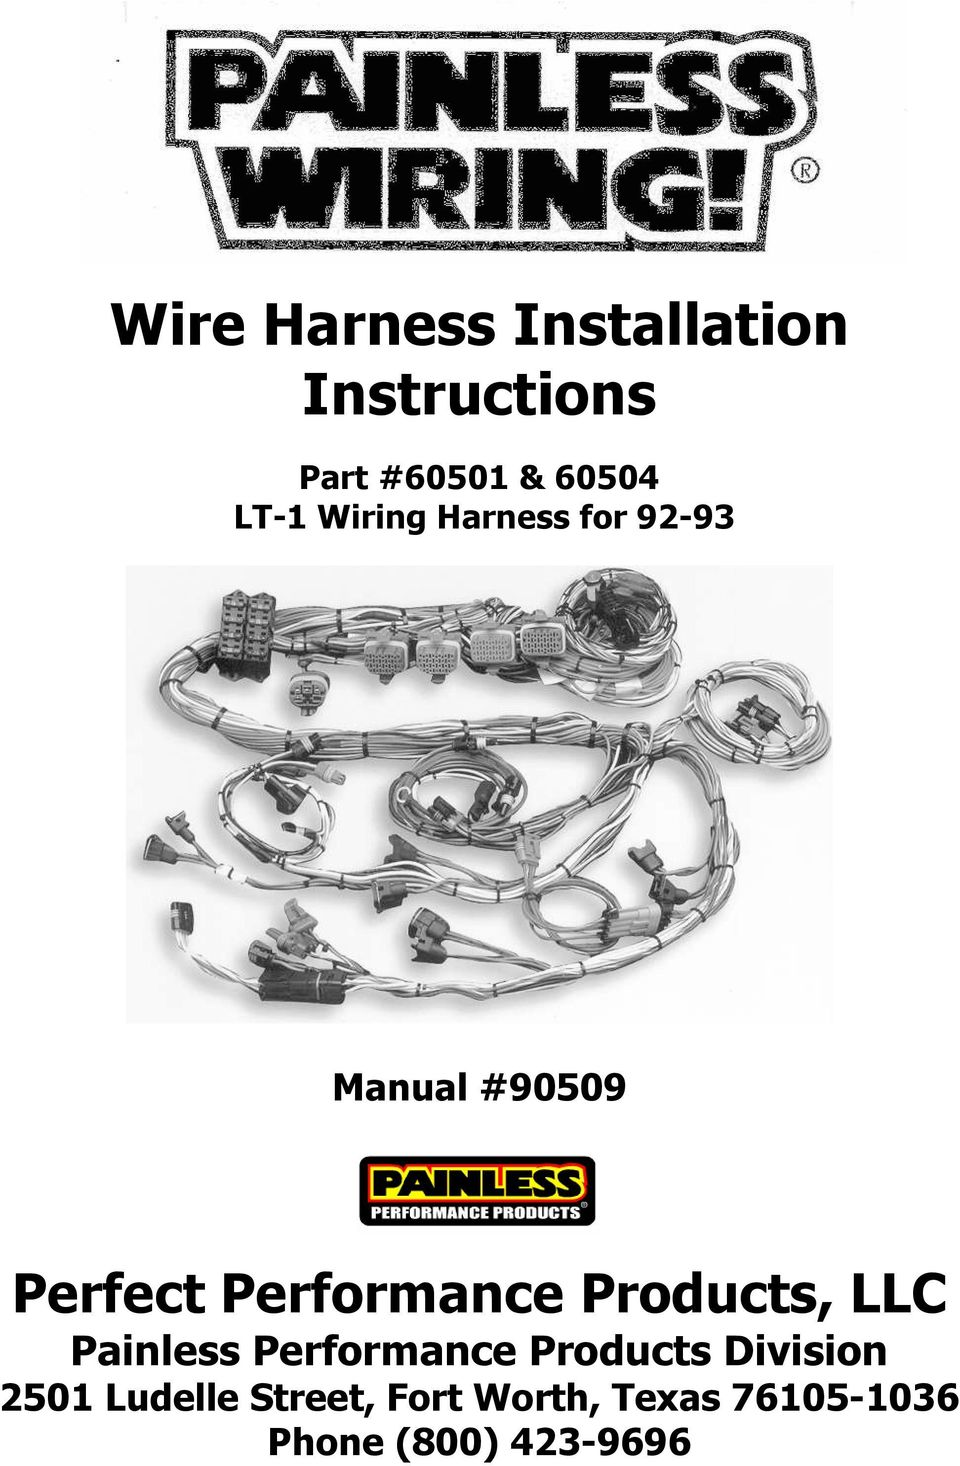 Wire Harness Installation Instructions Pdf Performance Products Llc Painless